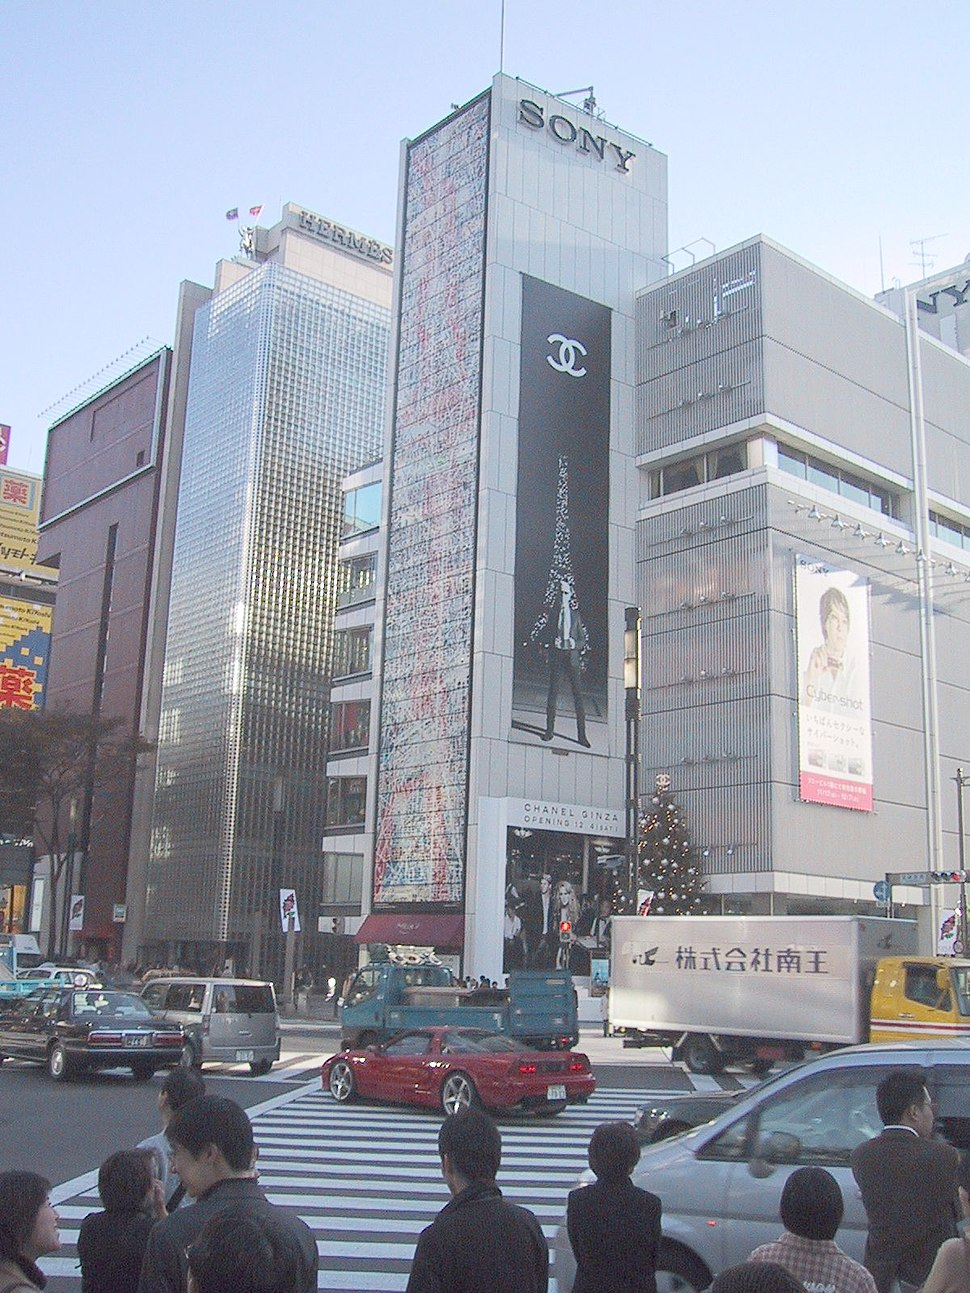 Sony building Ginza intersection Tokyo